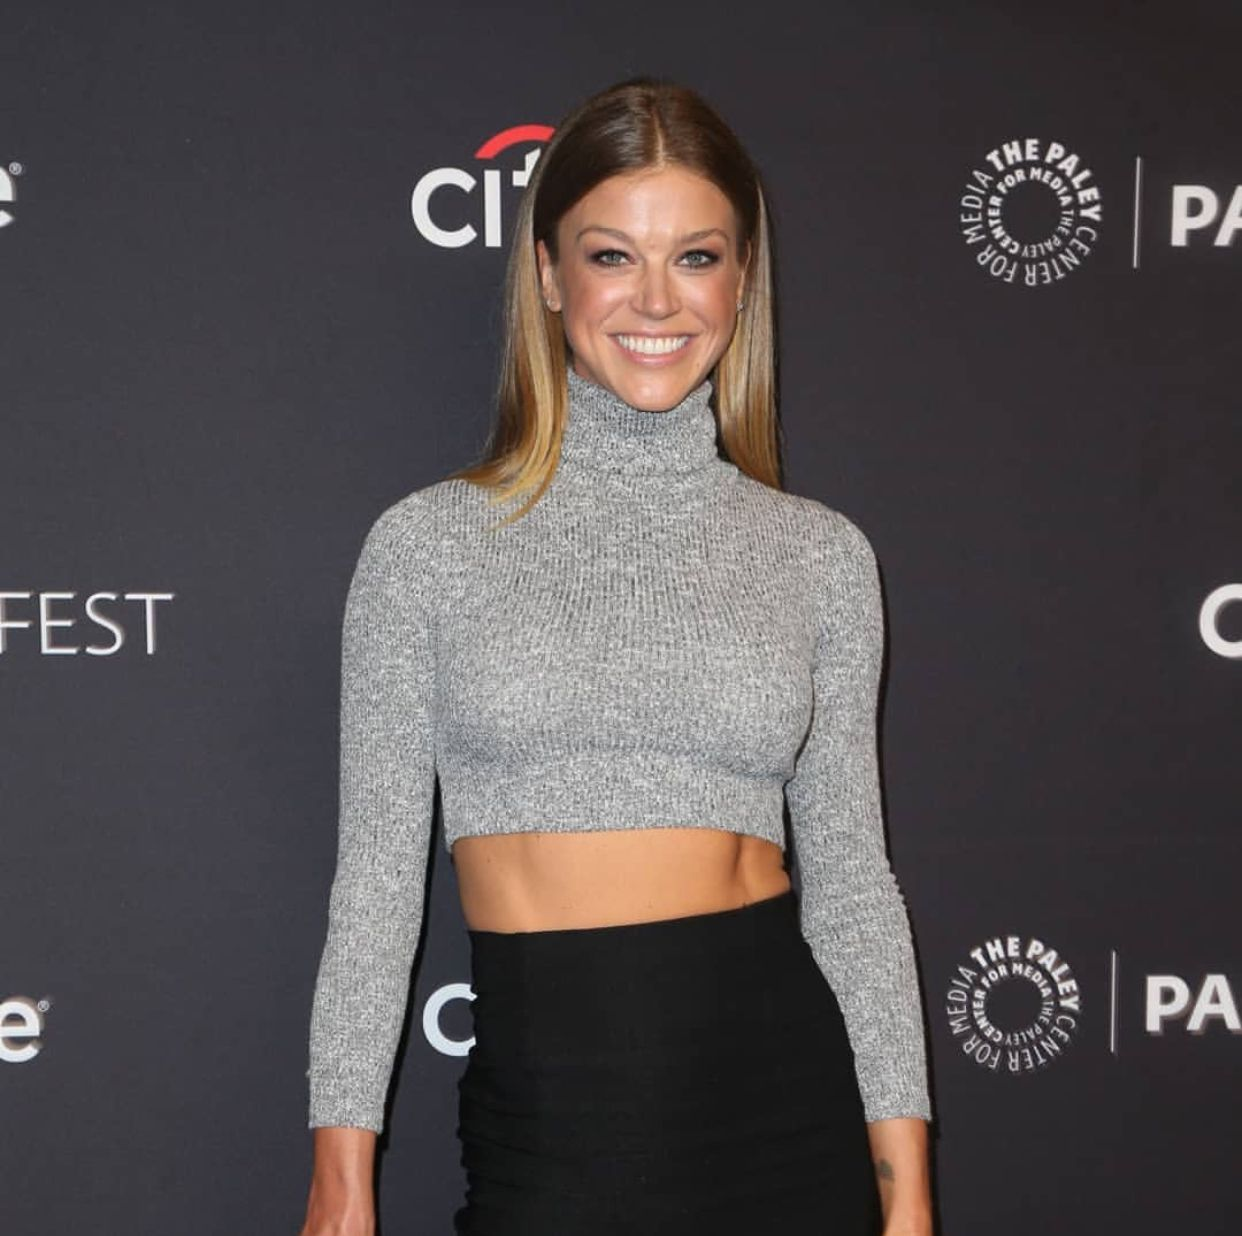 Adrianne Palicki At Paley Fest 2018 With The Orville Cast Ideas And Designs